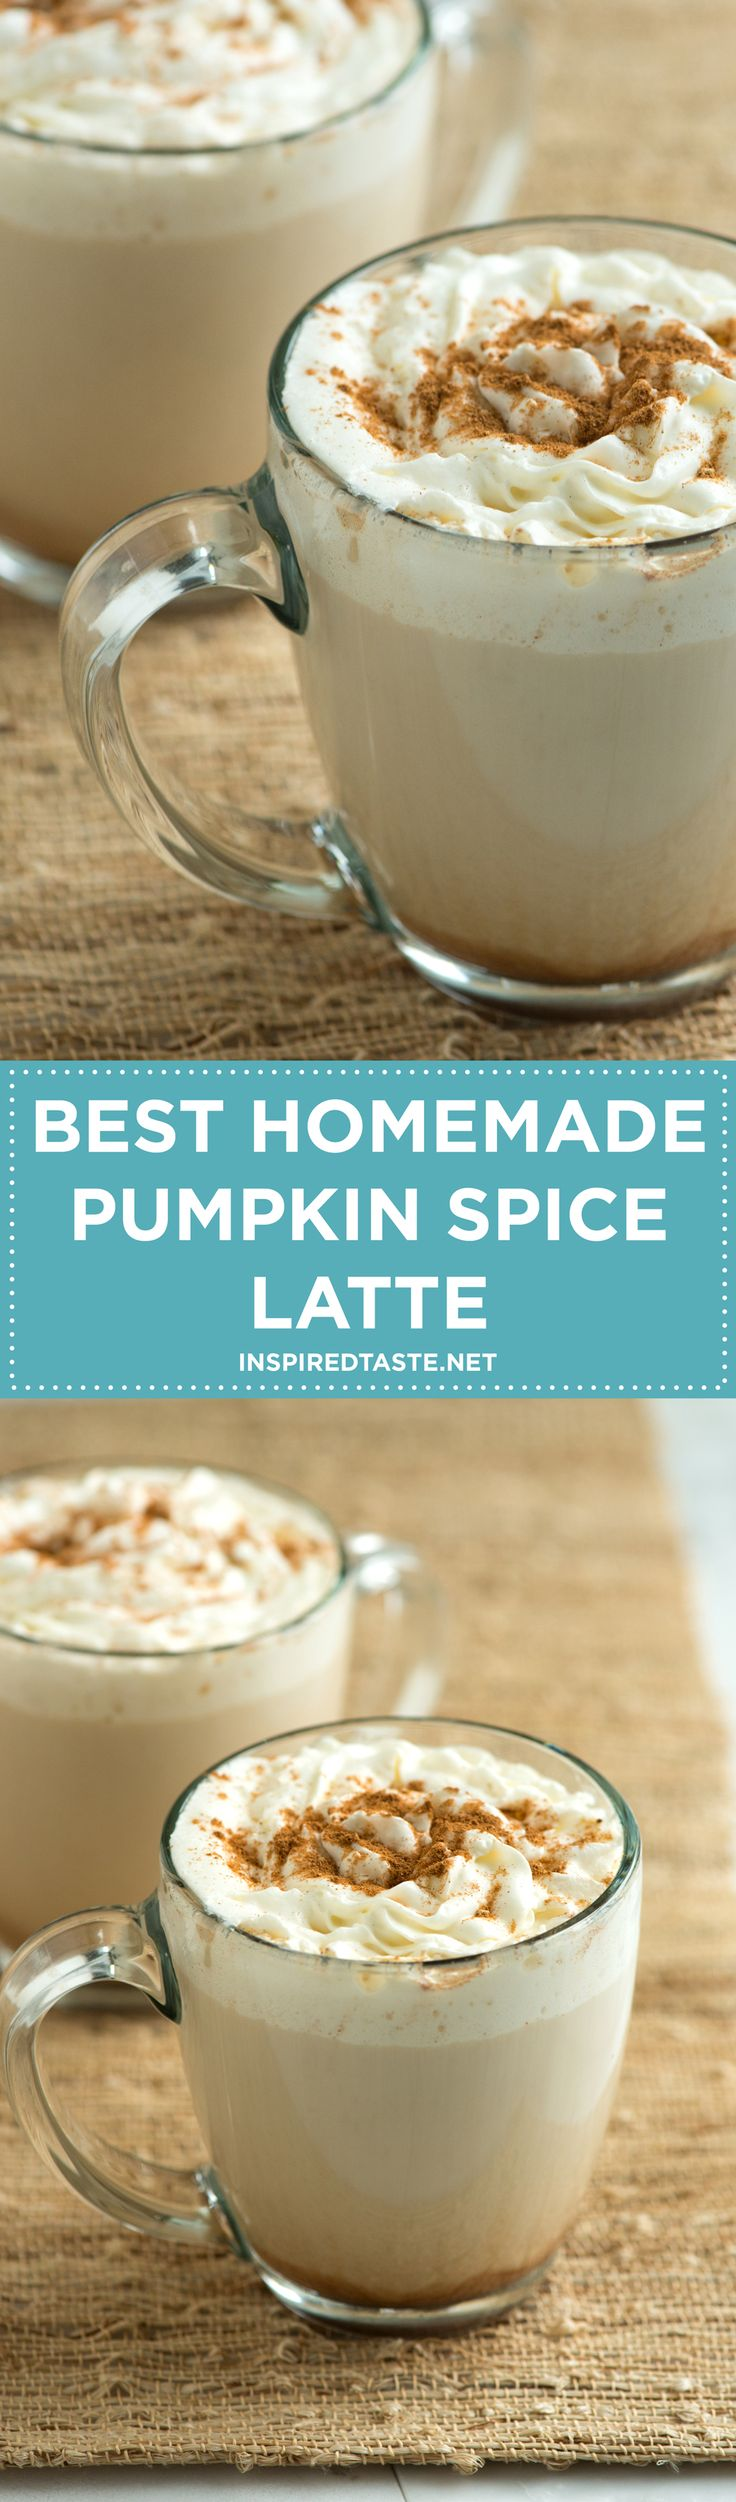 Make the popular coffee house pumpkin latte at home. The best homemade pumpkin spice latte recipe with pumpkin puree, coffee, milk, vanilla and fall spices. Recipe on inspiredtaste.net | @inspiredtaste